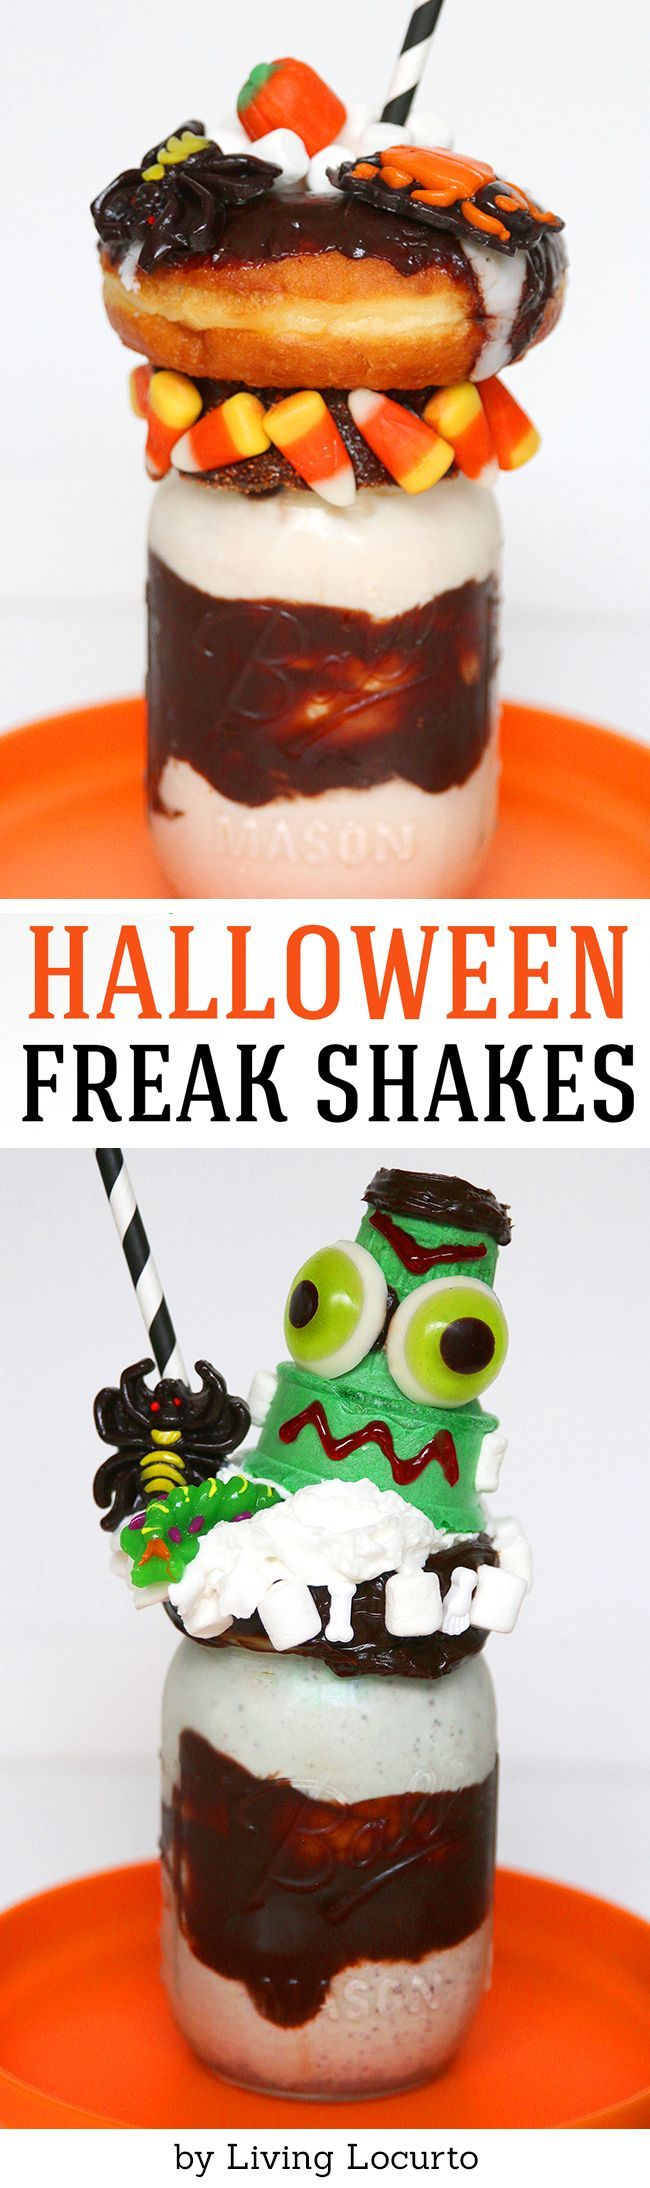 A Halloween milkshake is the perfect Halloween food for a creepy and fun school snack or Halloween party treat! These fun freak shakes are piled high with candy and donuts. Love this creepy Frankenstein Halloween ice cream dessert.